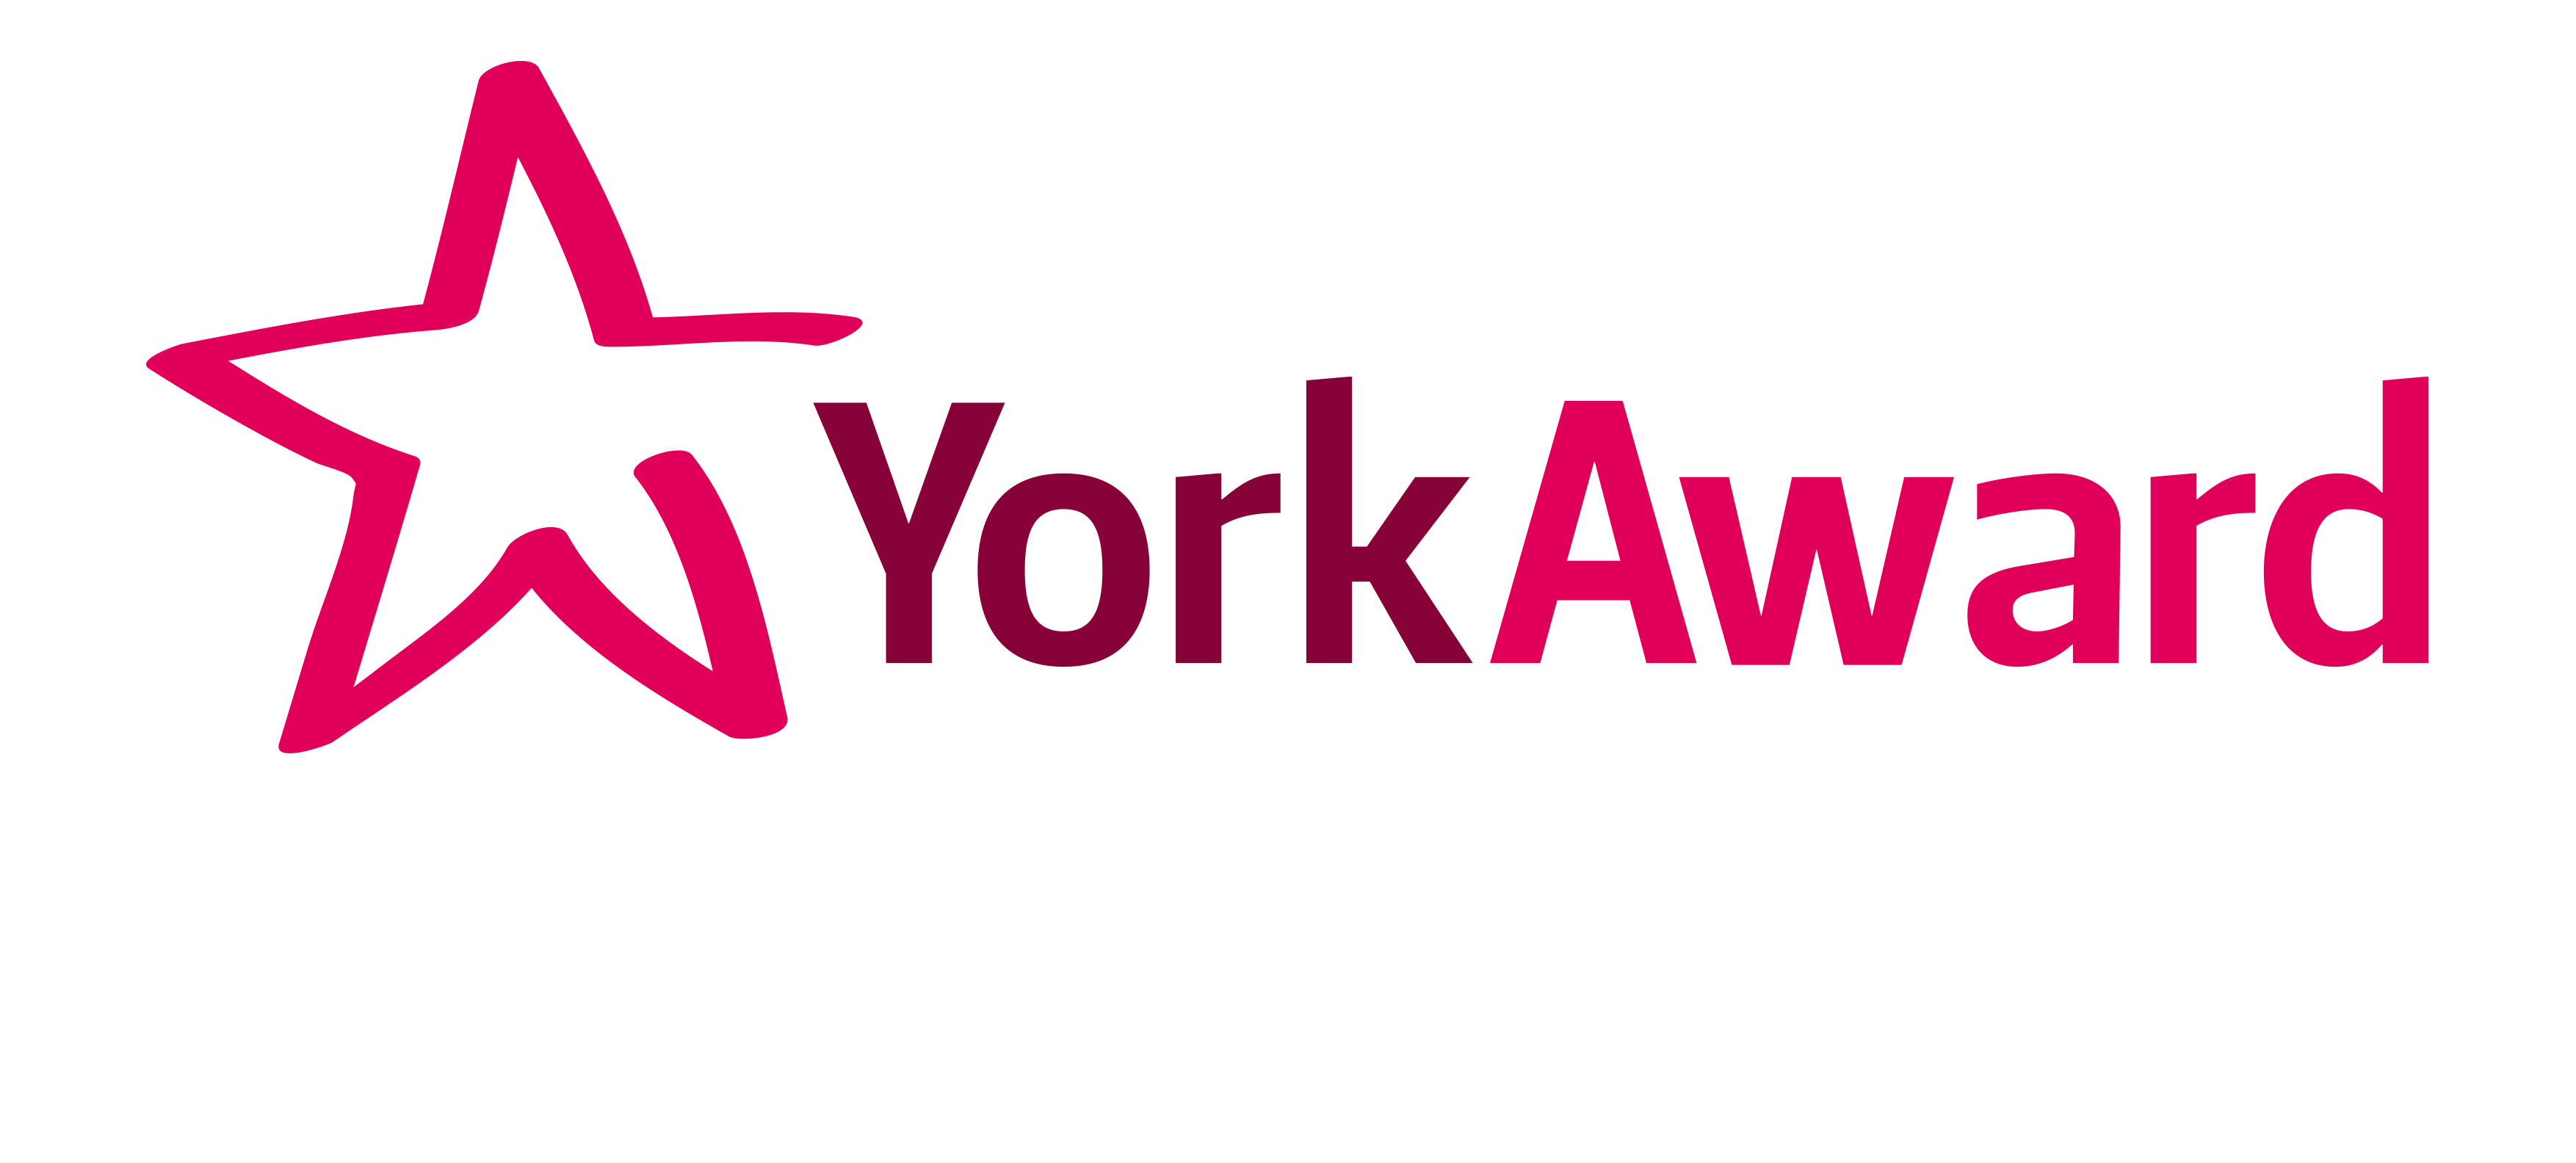 York Award logo